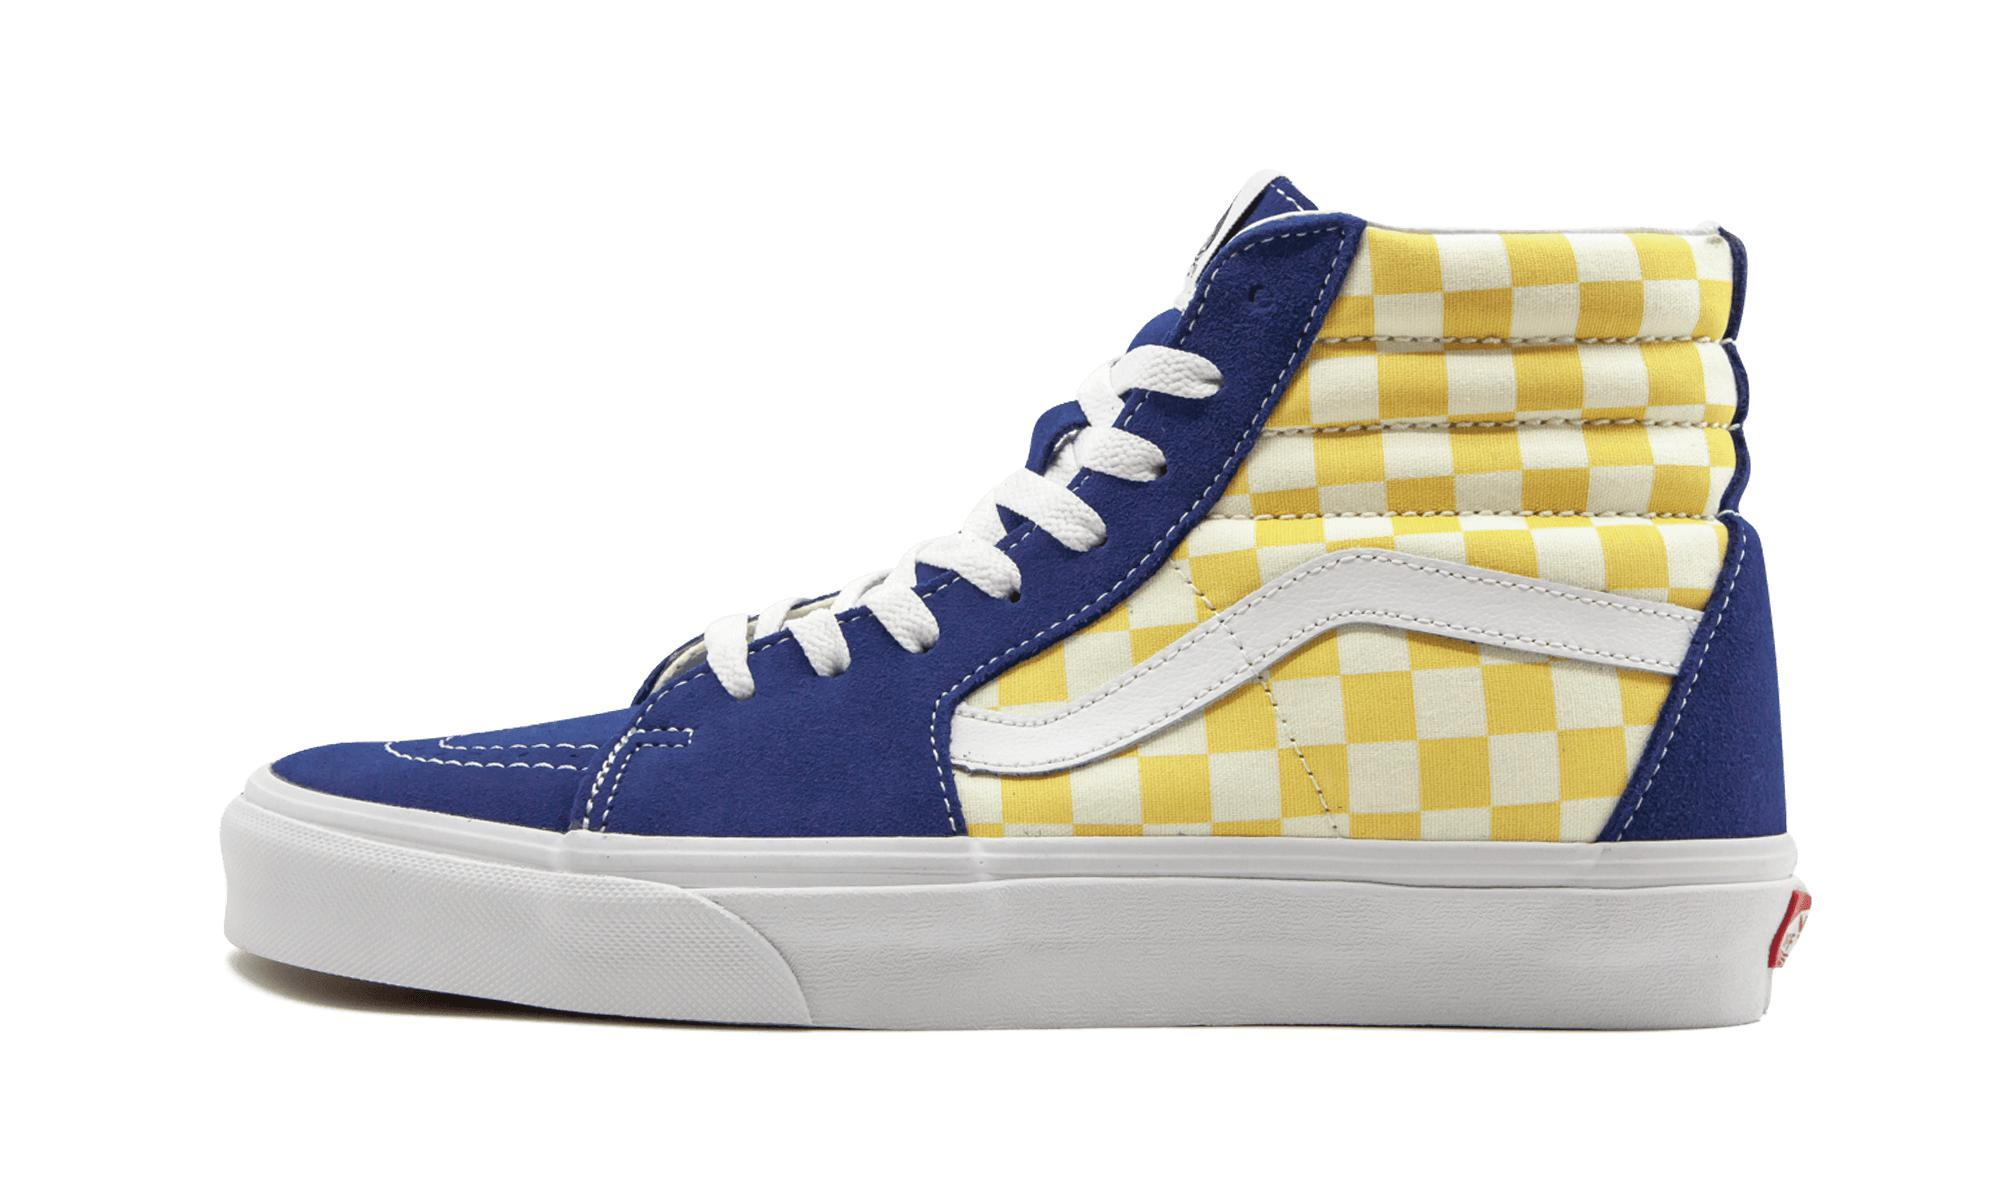 3ab08a5d6b6 Vans Sk8-hi (bmx Checkerboard) in Blue for Men - Lyst